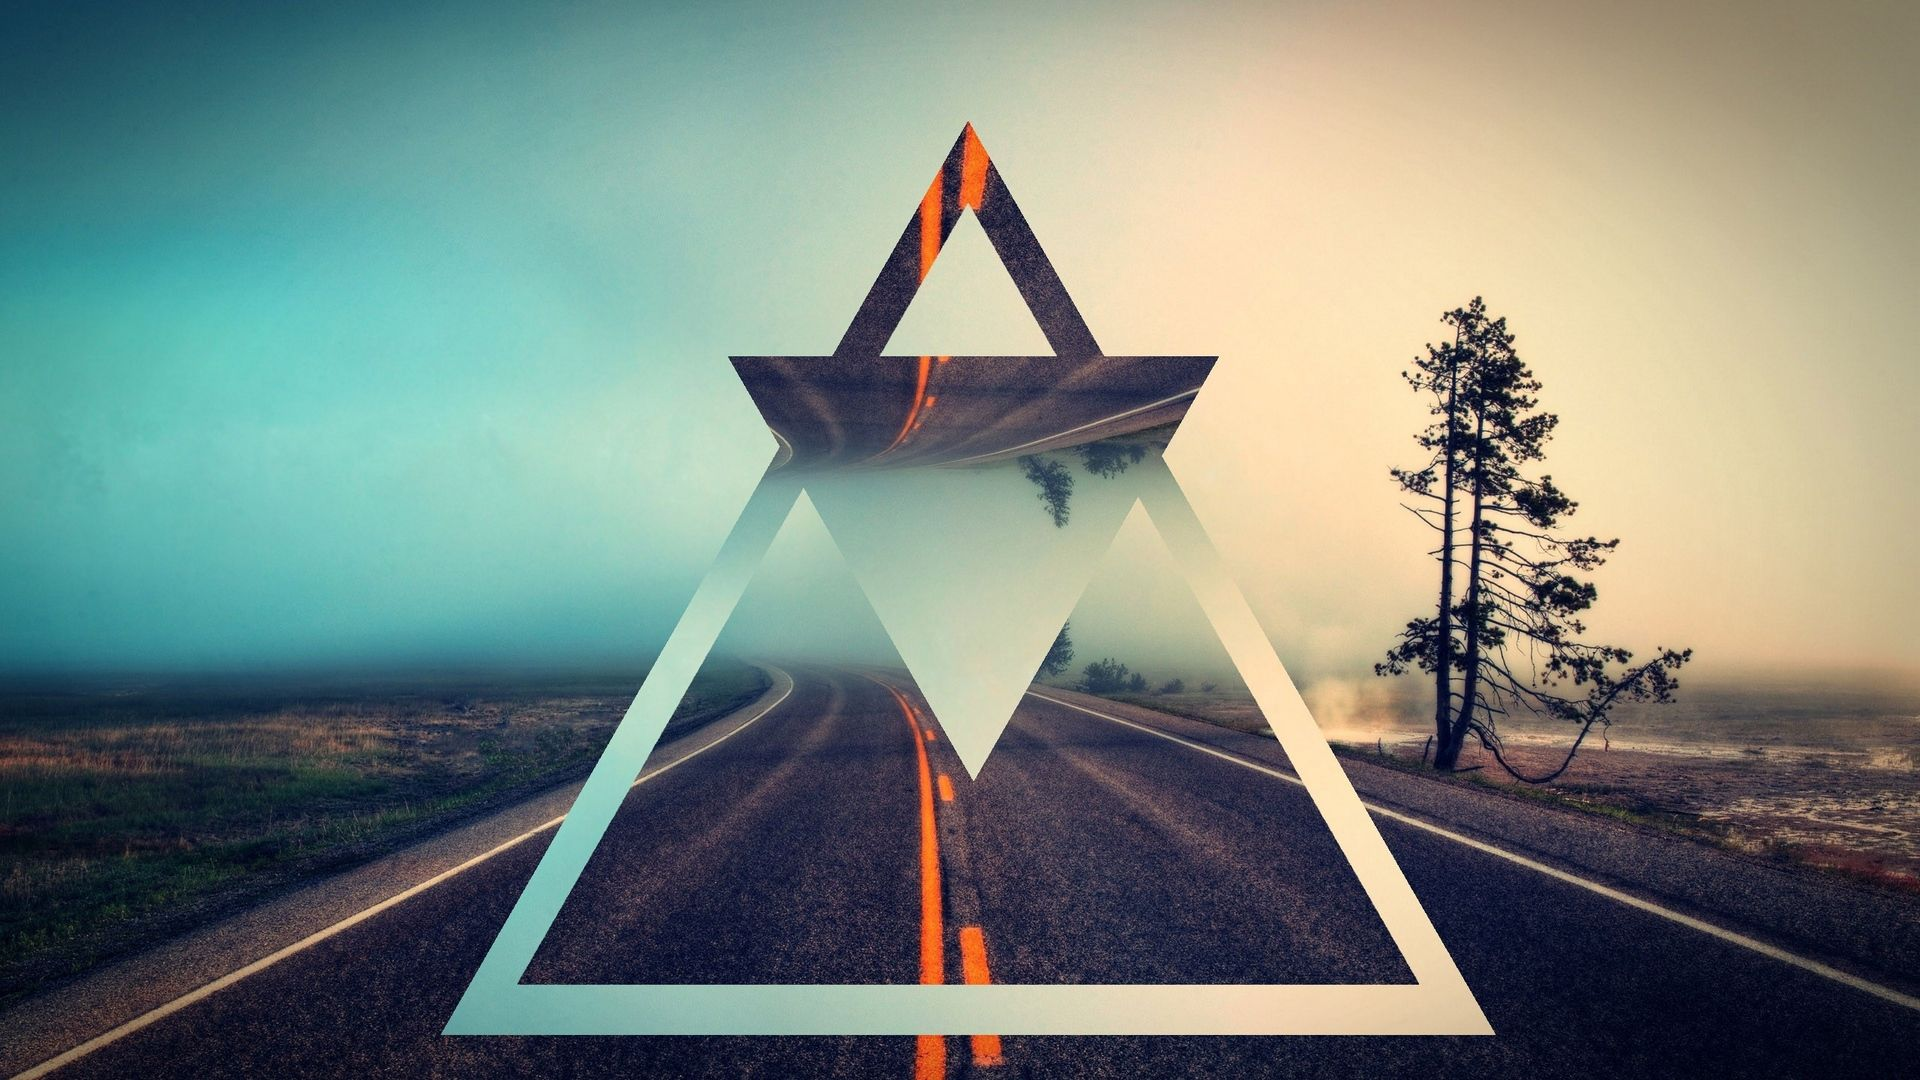 Triangle new wallpaper